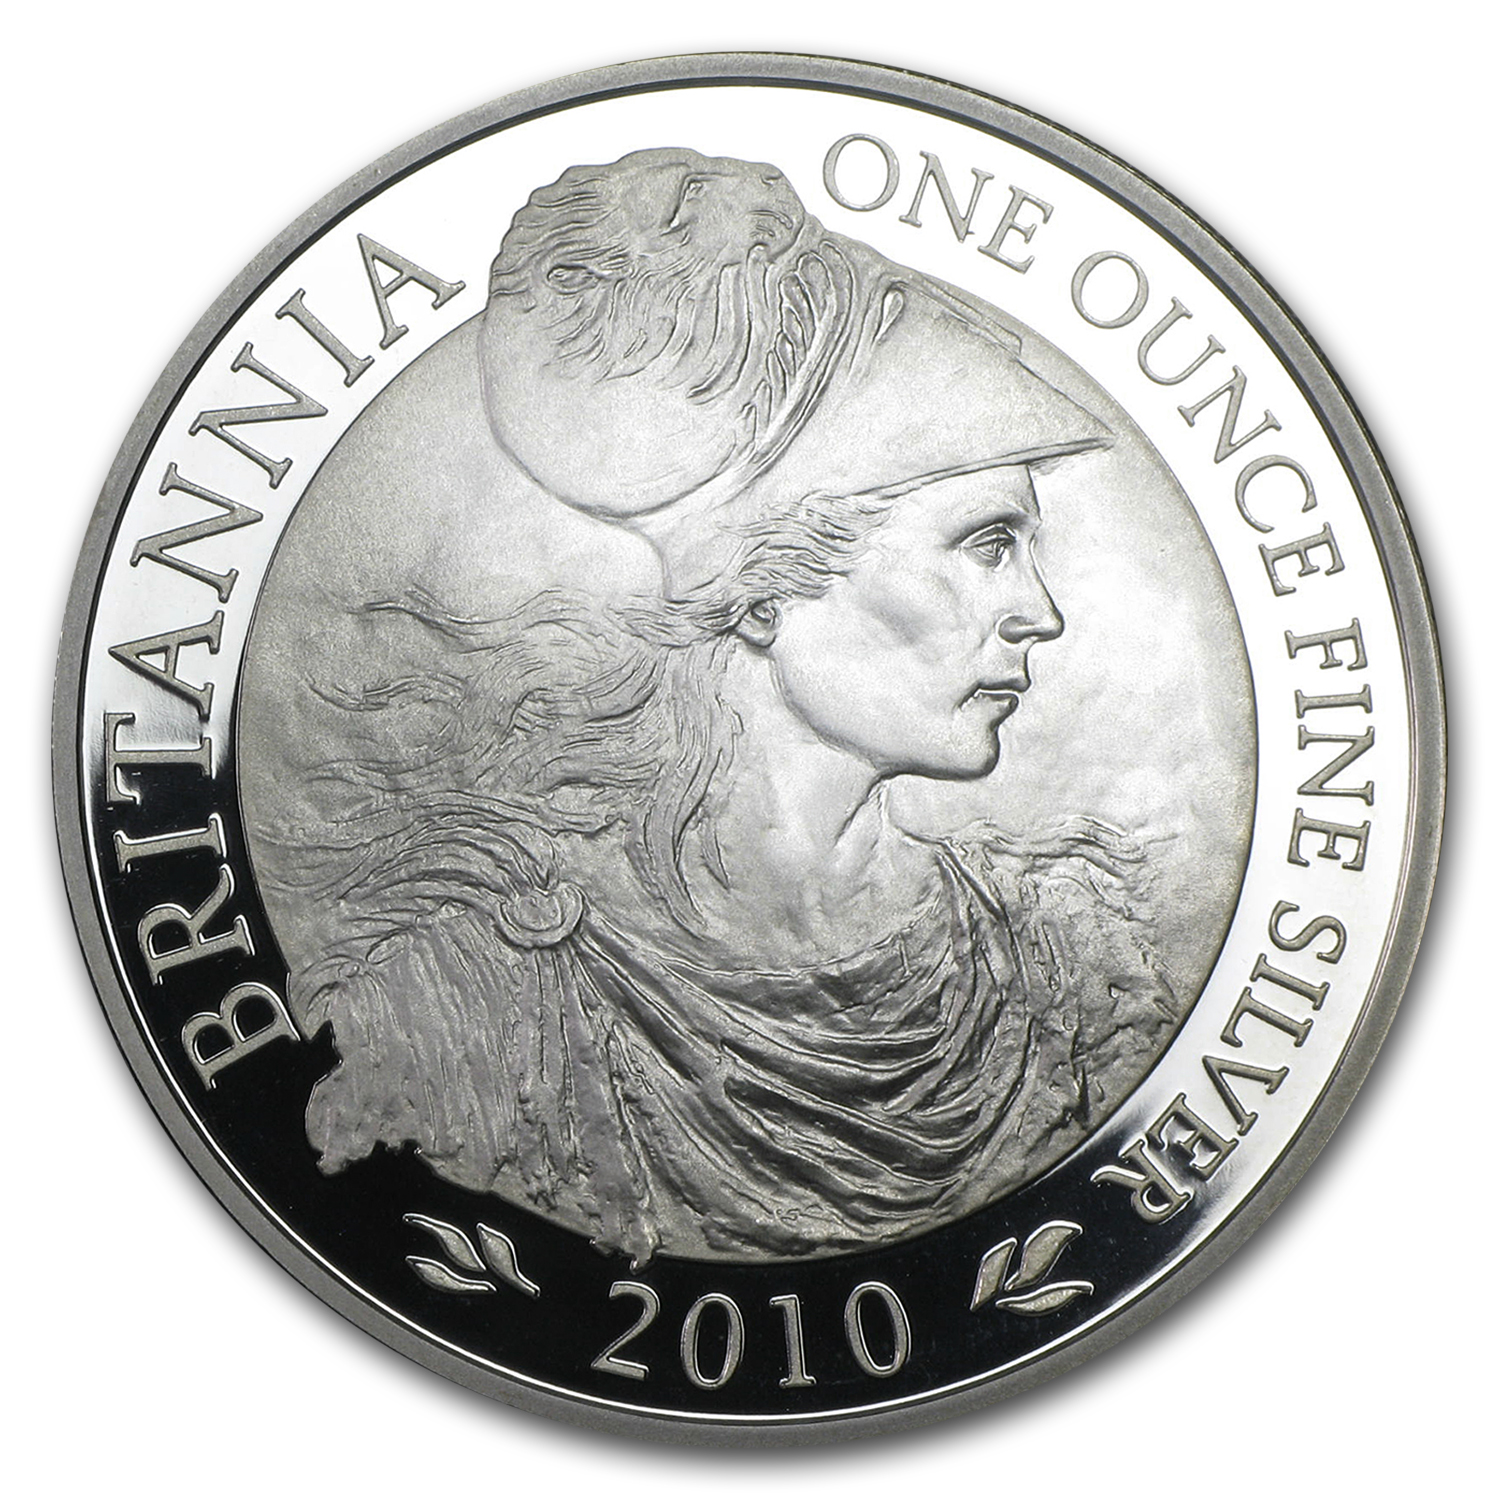 2010 1 oz Silver Britannia - Proof (w/Box & CoA)